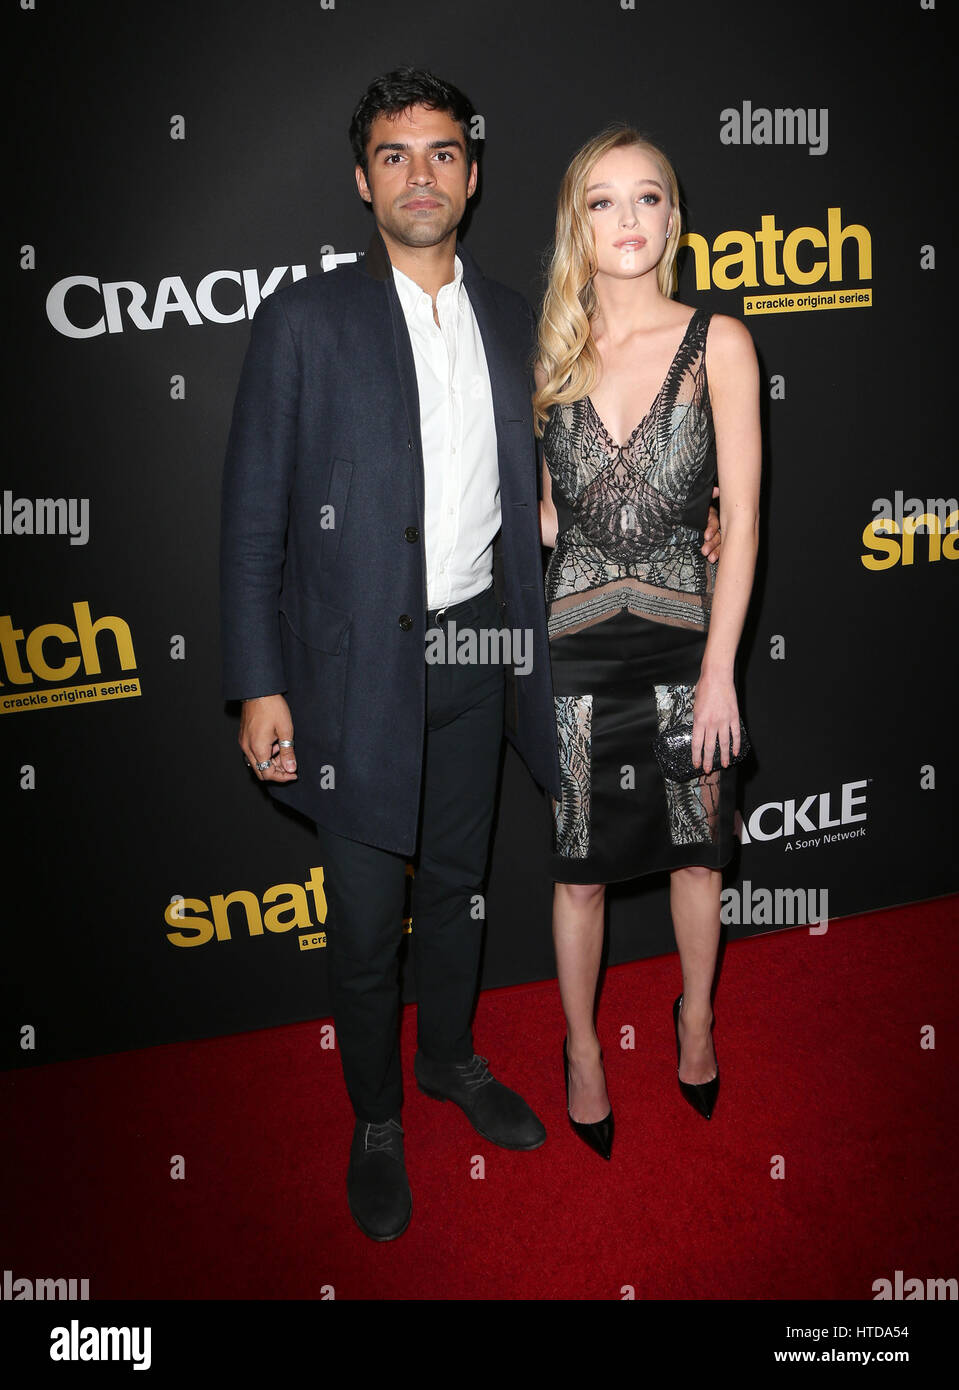 Culver City, Ca. 09th Mar, 2017. Sean Teale, Phoebe Dynevor, At Premiere Screening of Crackle's 'Snatch' - Stock Image